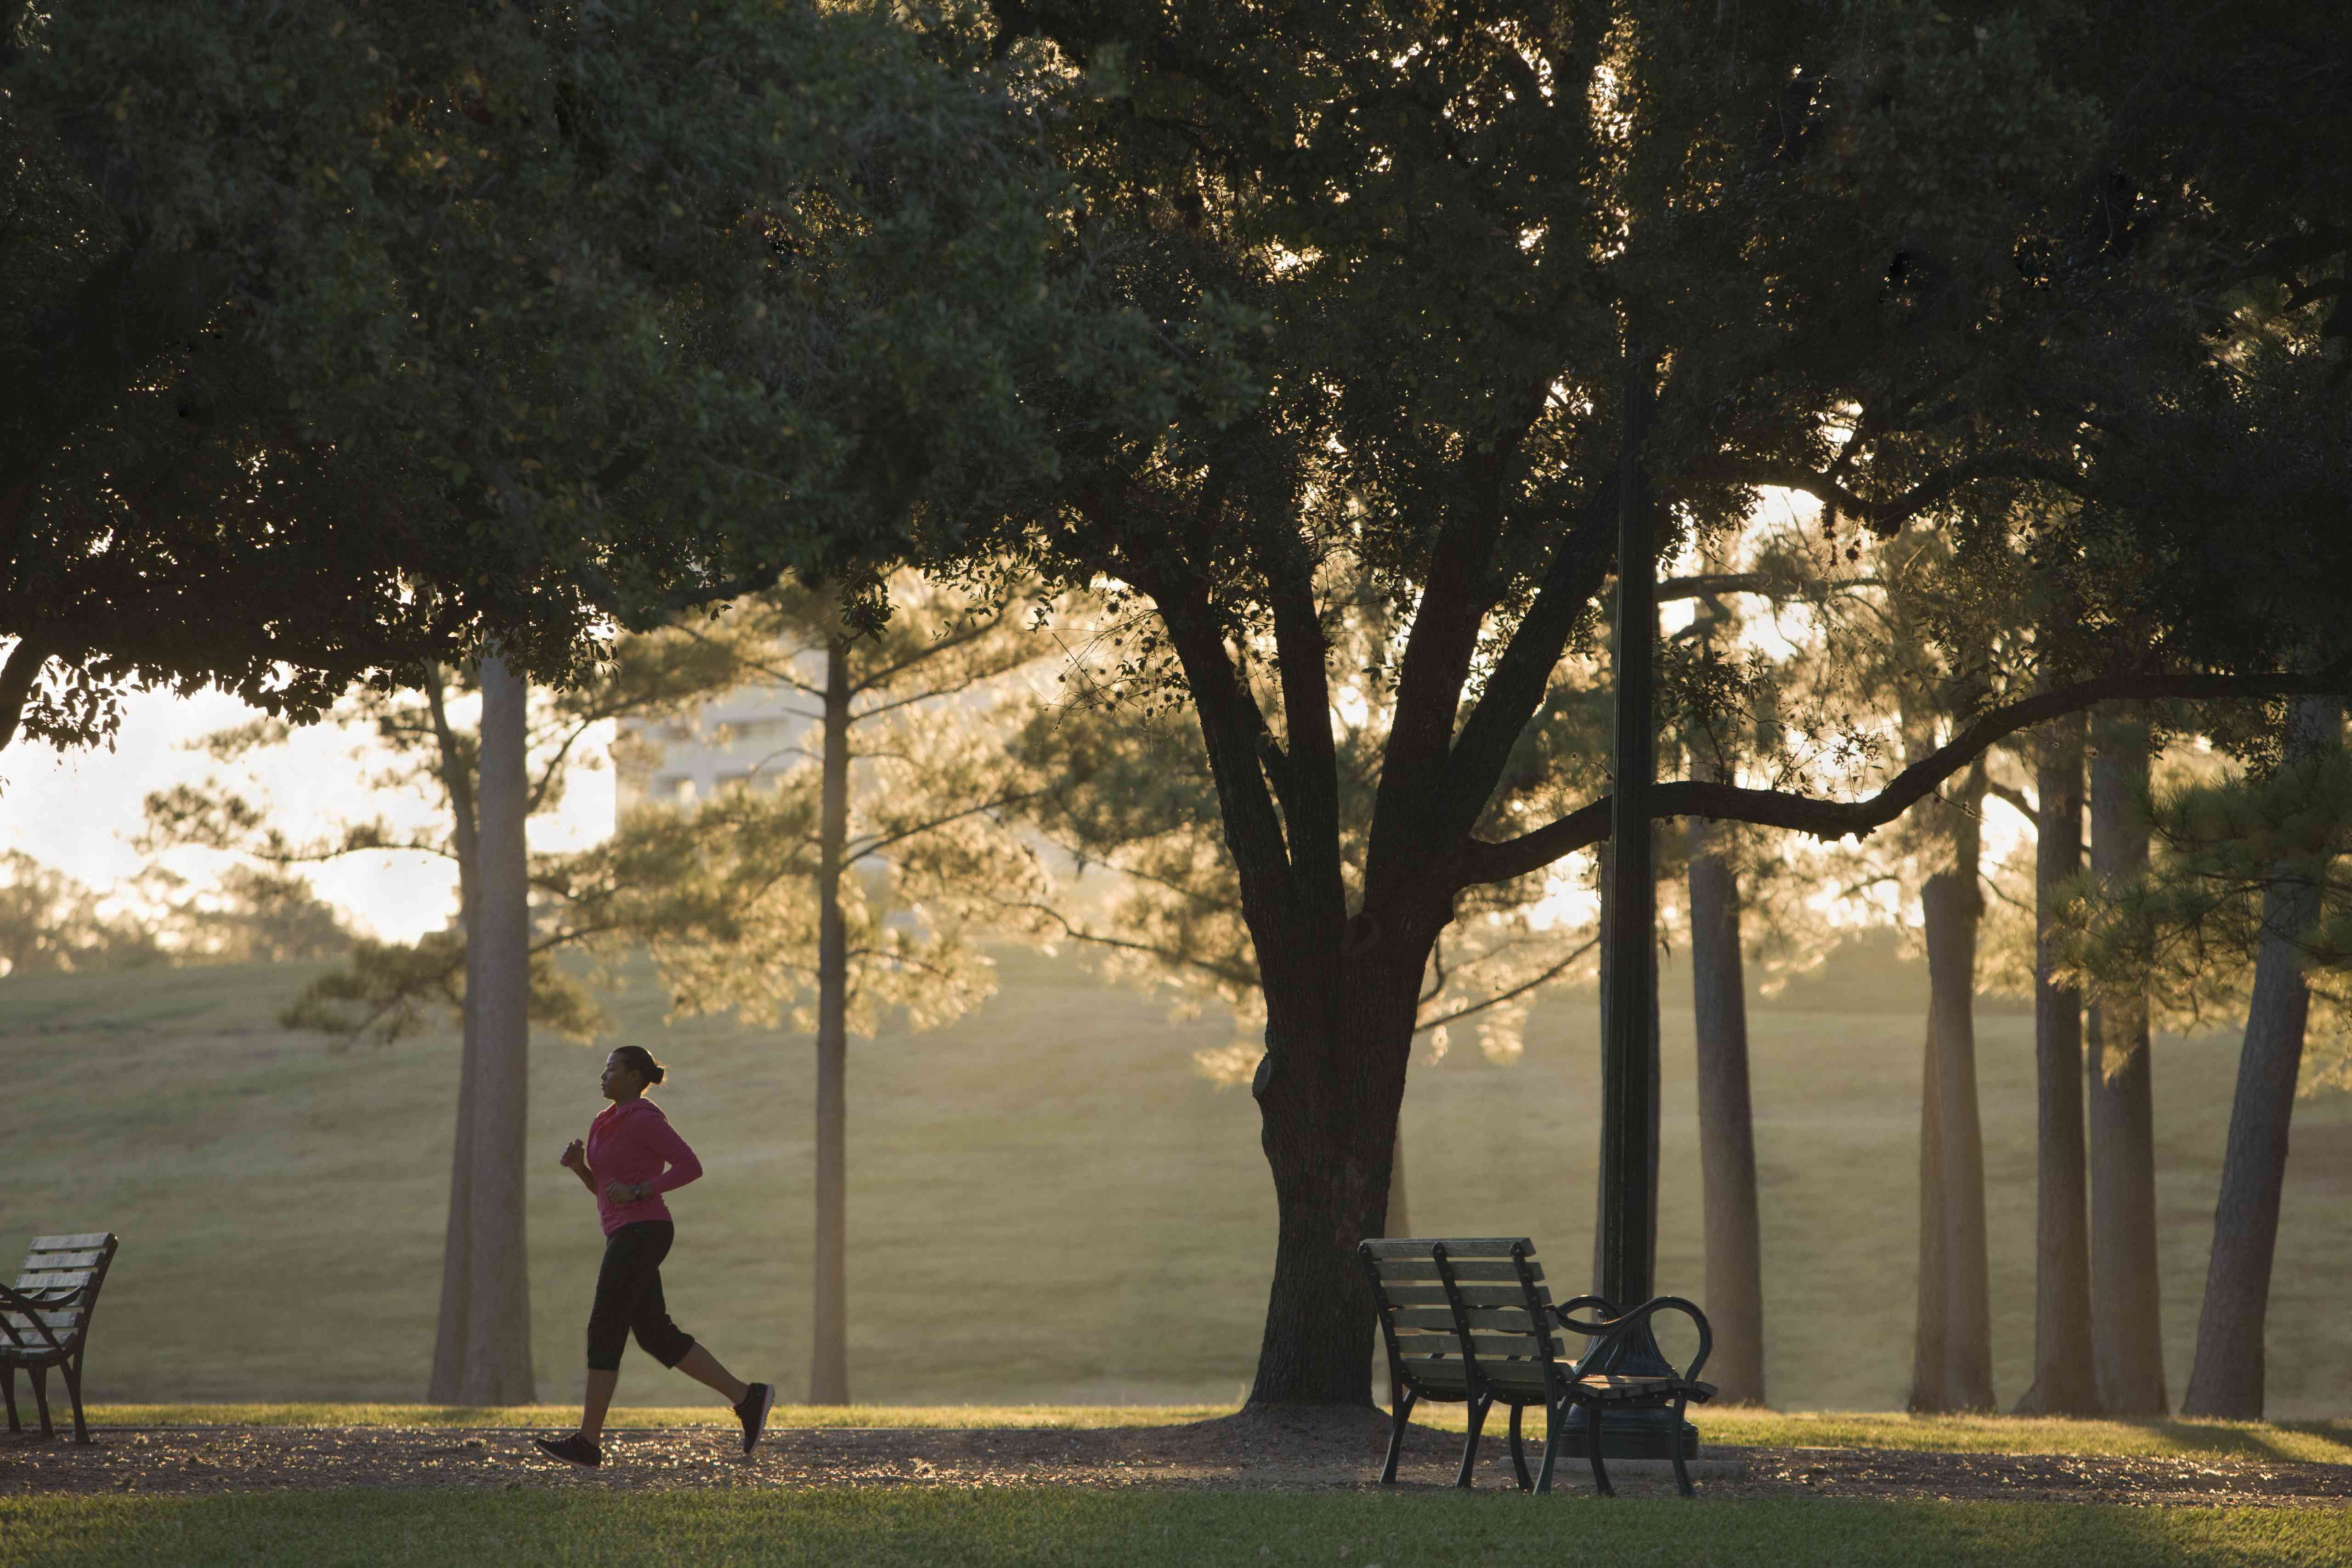 Woman running in park at dusk